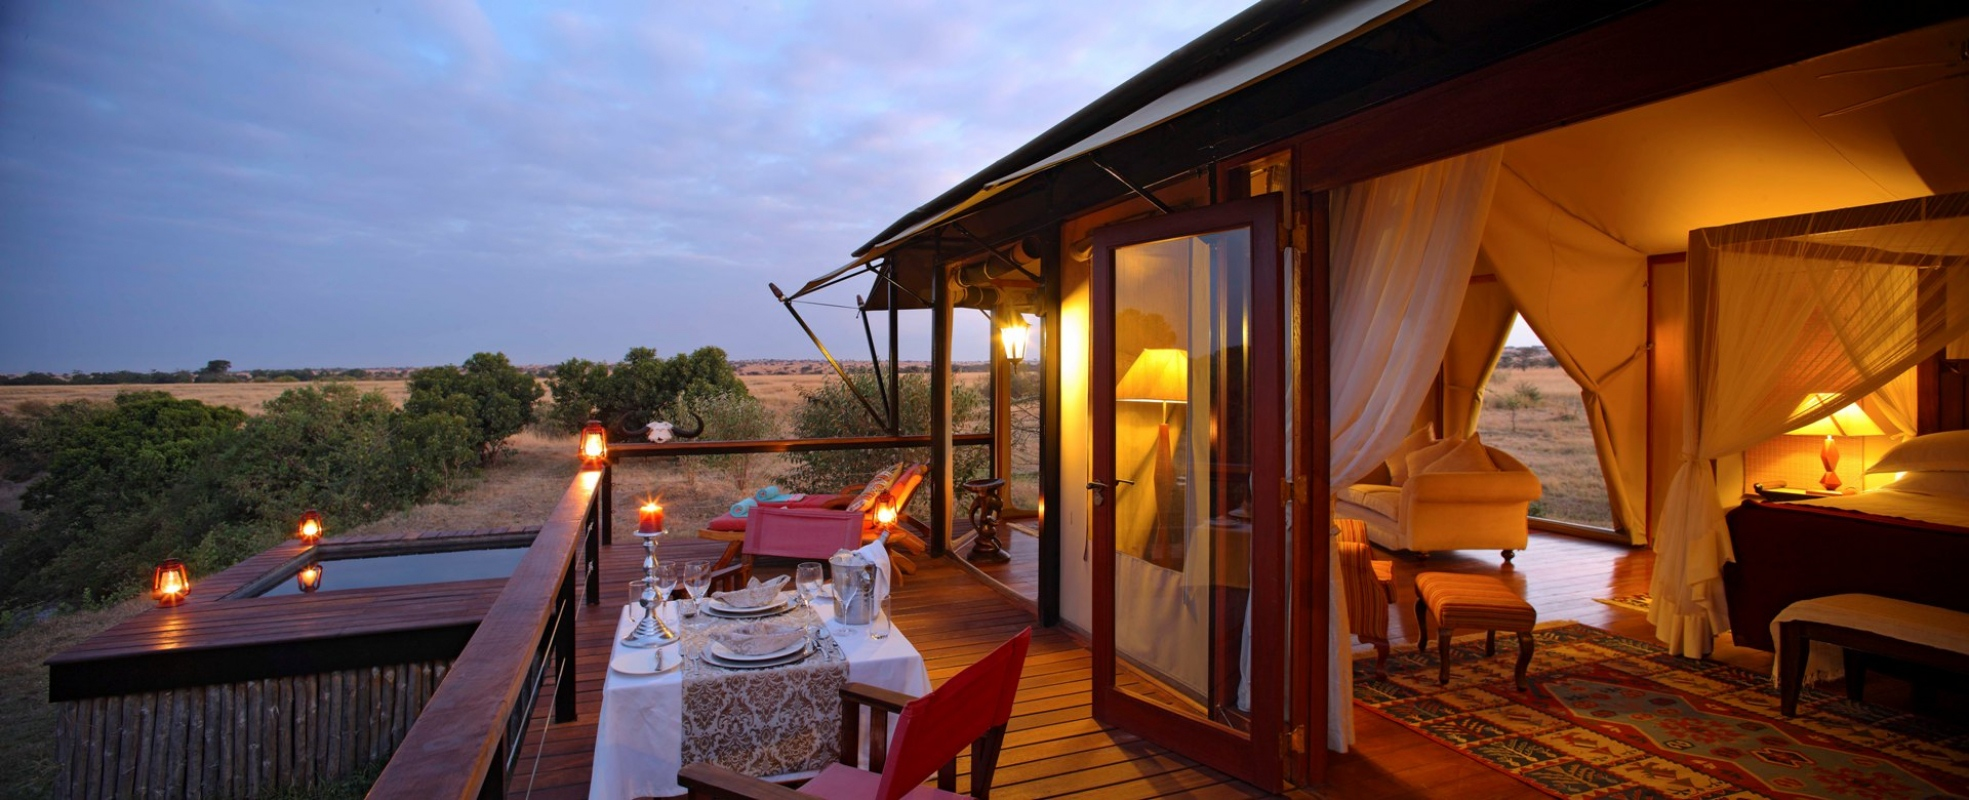 Kenya Deluxe Safari Packages